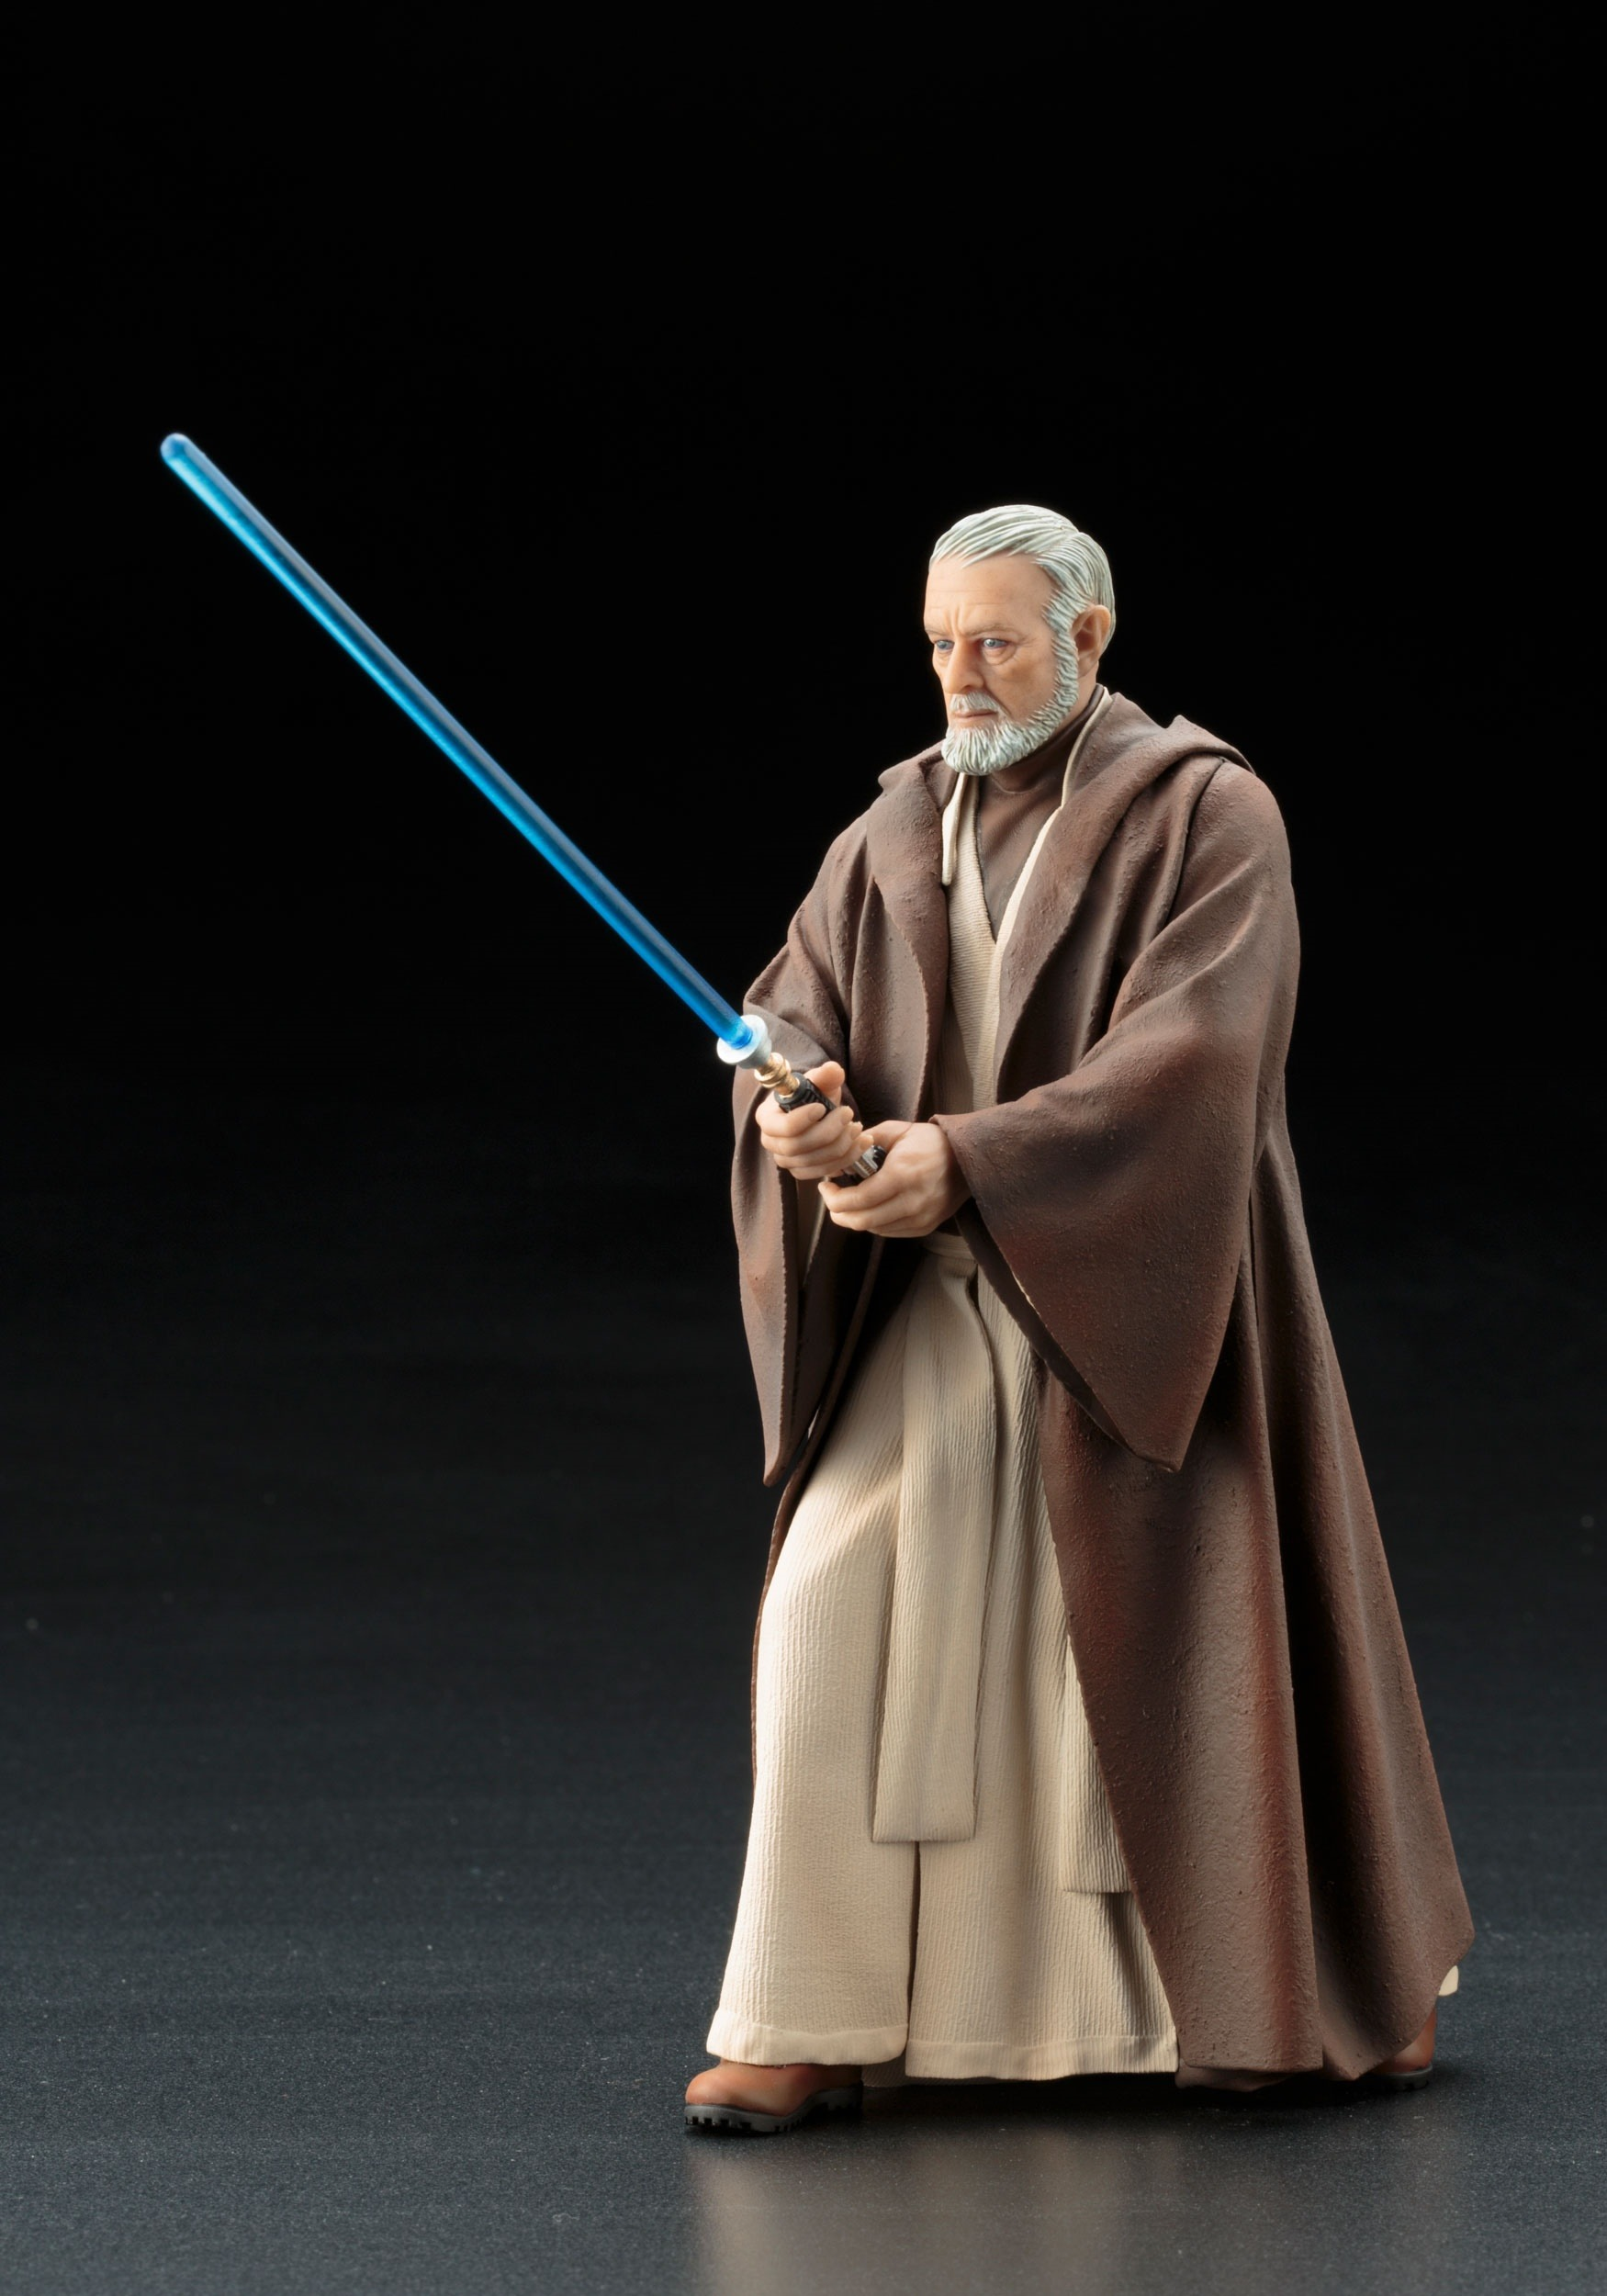 Pool Filtersand Obi Star Wars Collectibles Action Figures Replicas